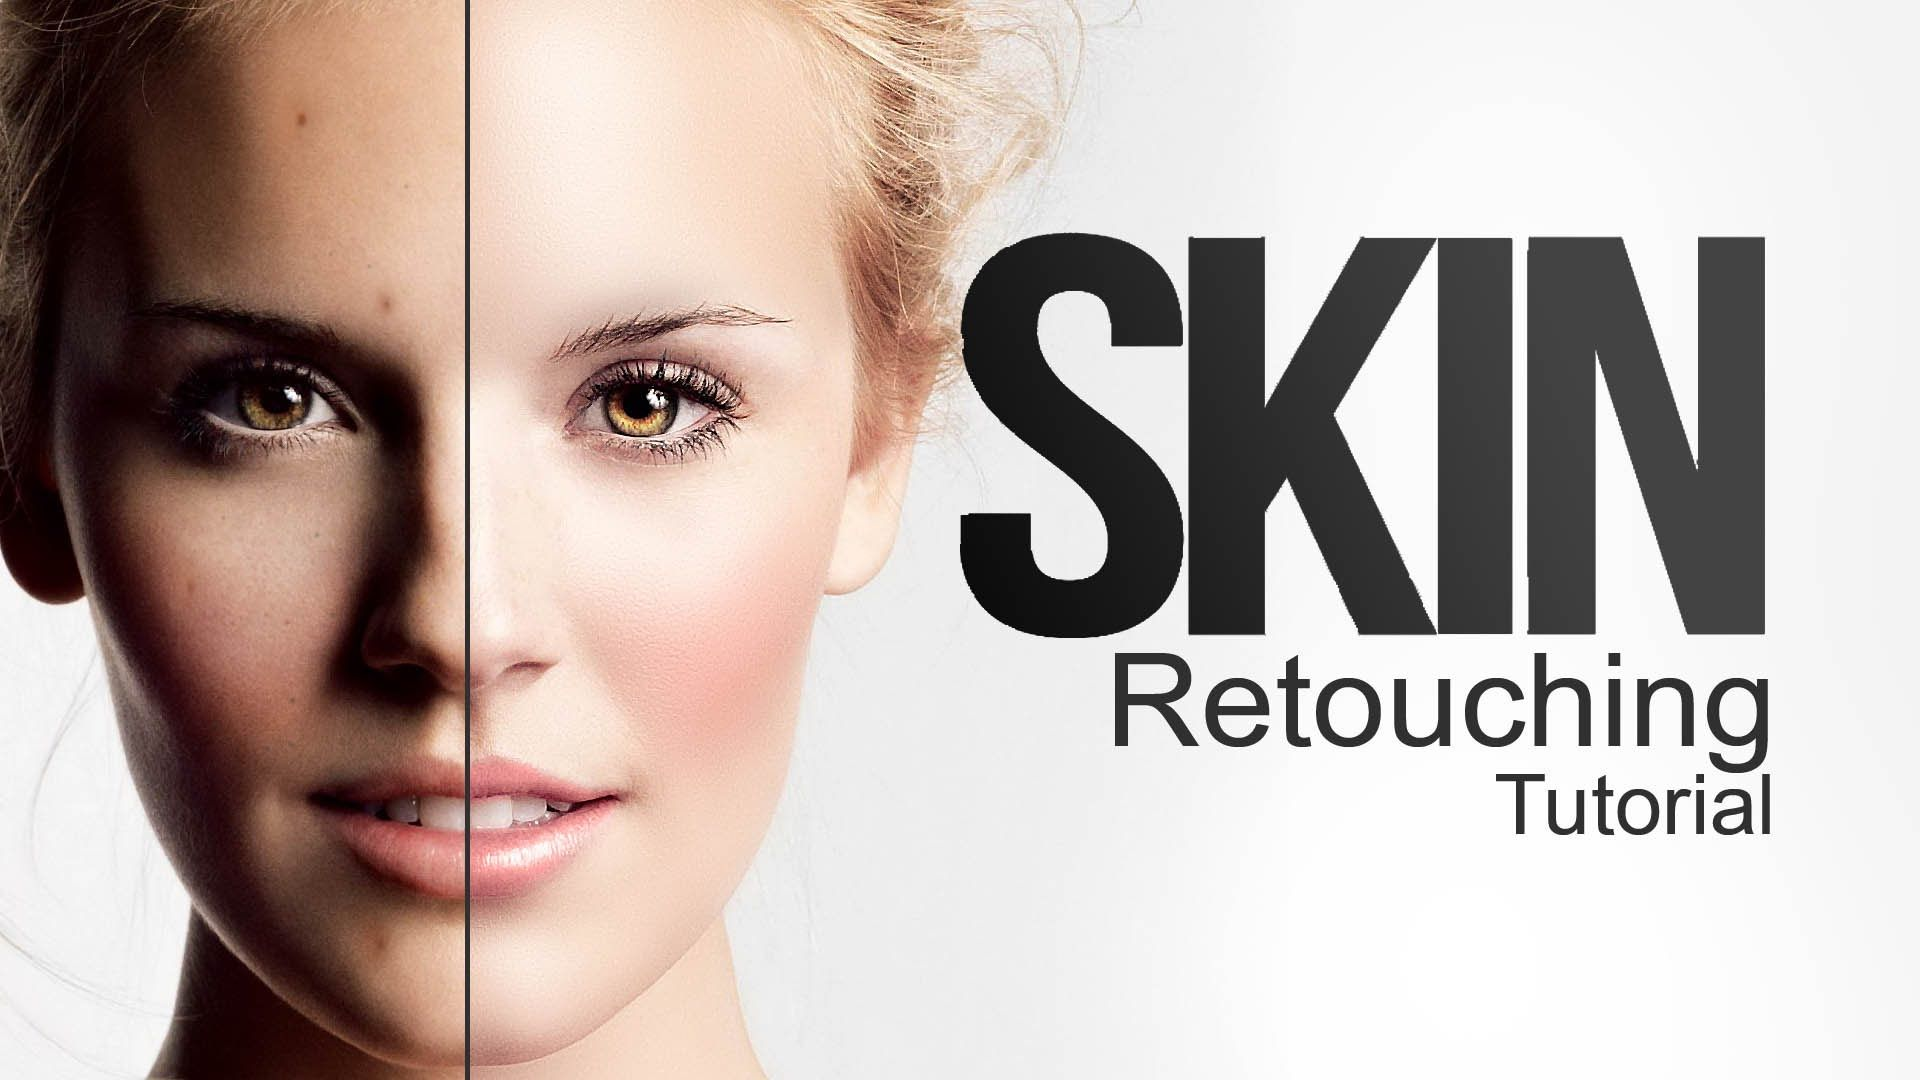 Skin retouching tutorial frequency separation click3d skin retouching tutorial frequency separation click3d baditri Image collections